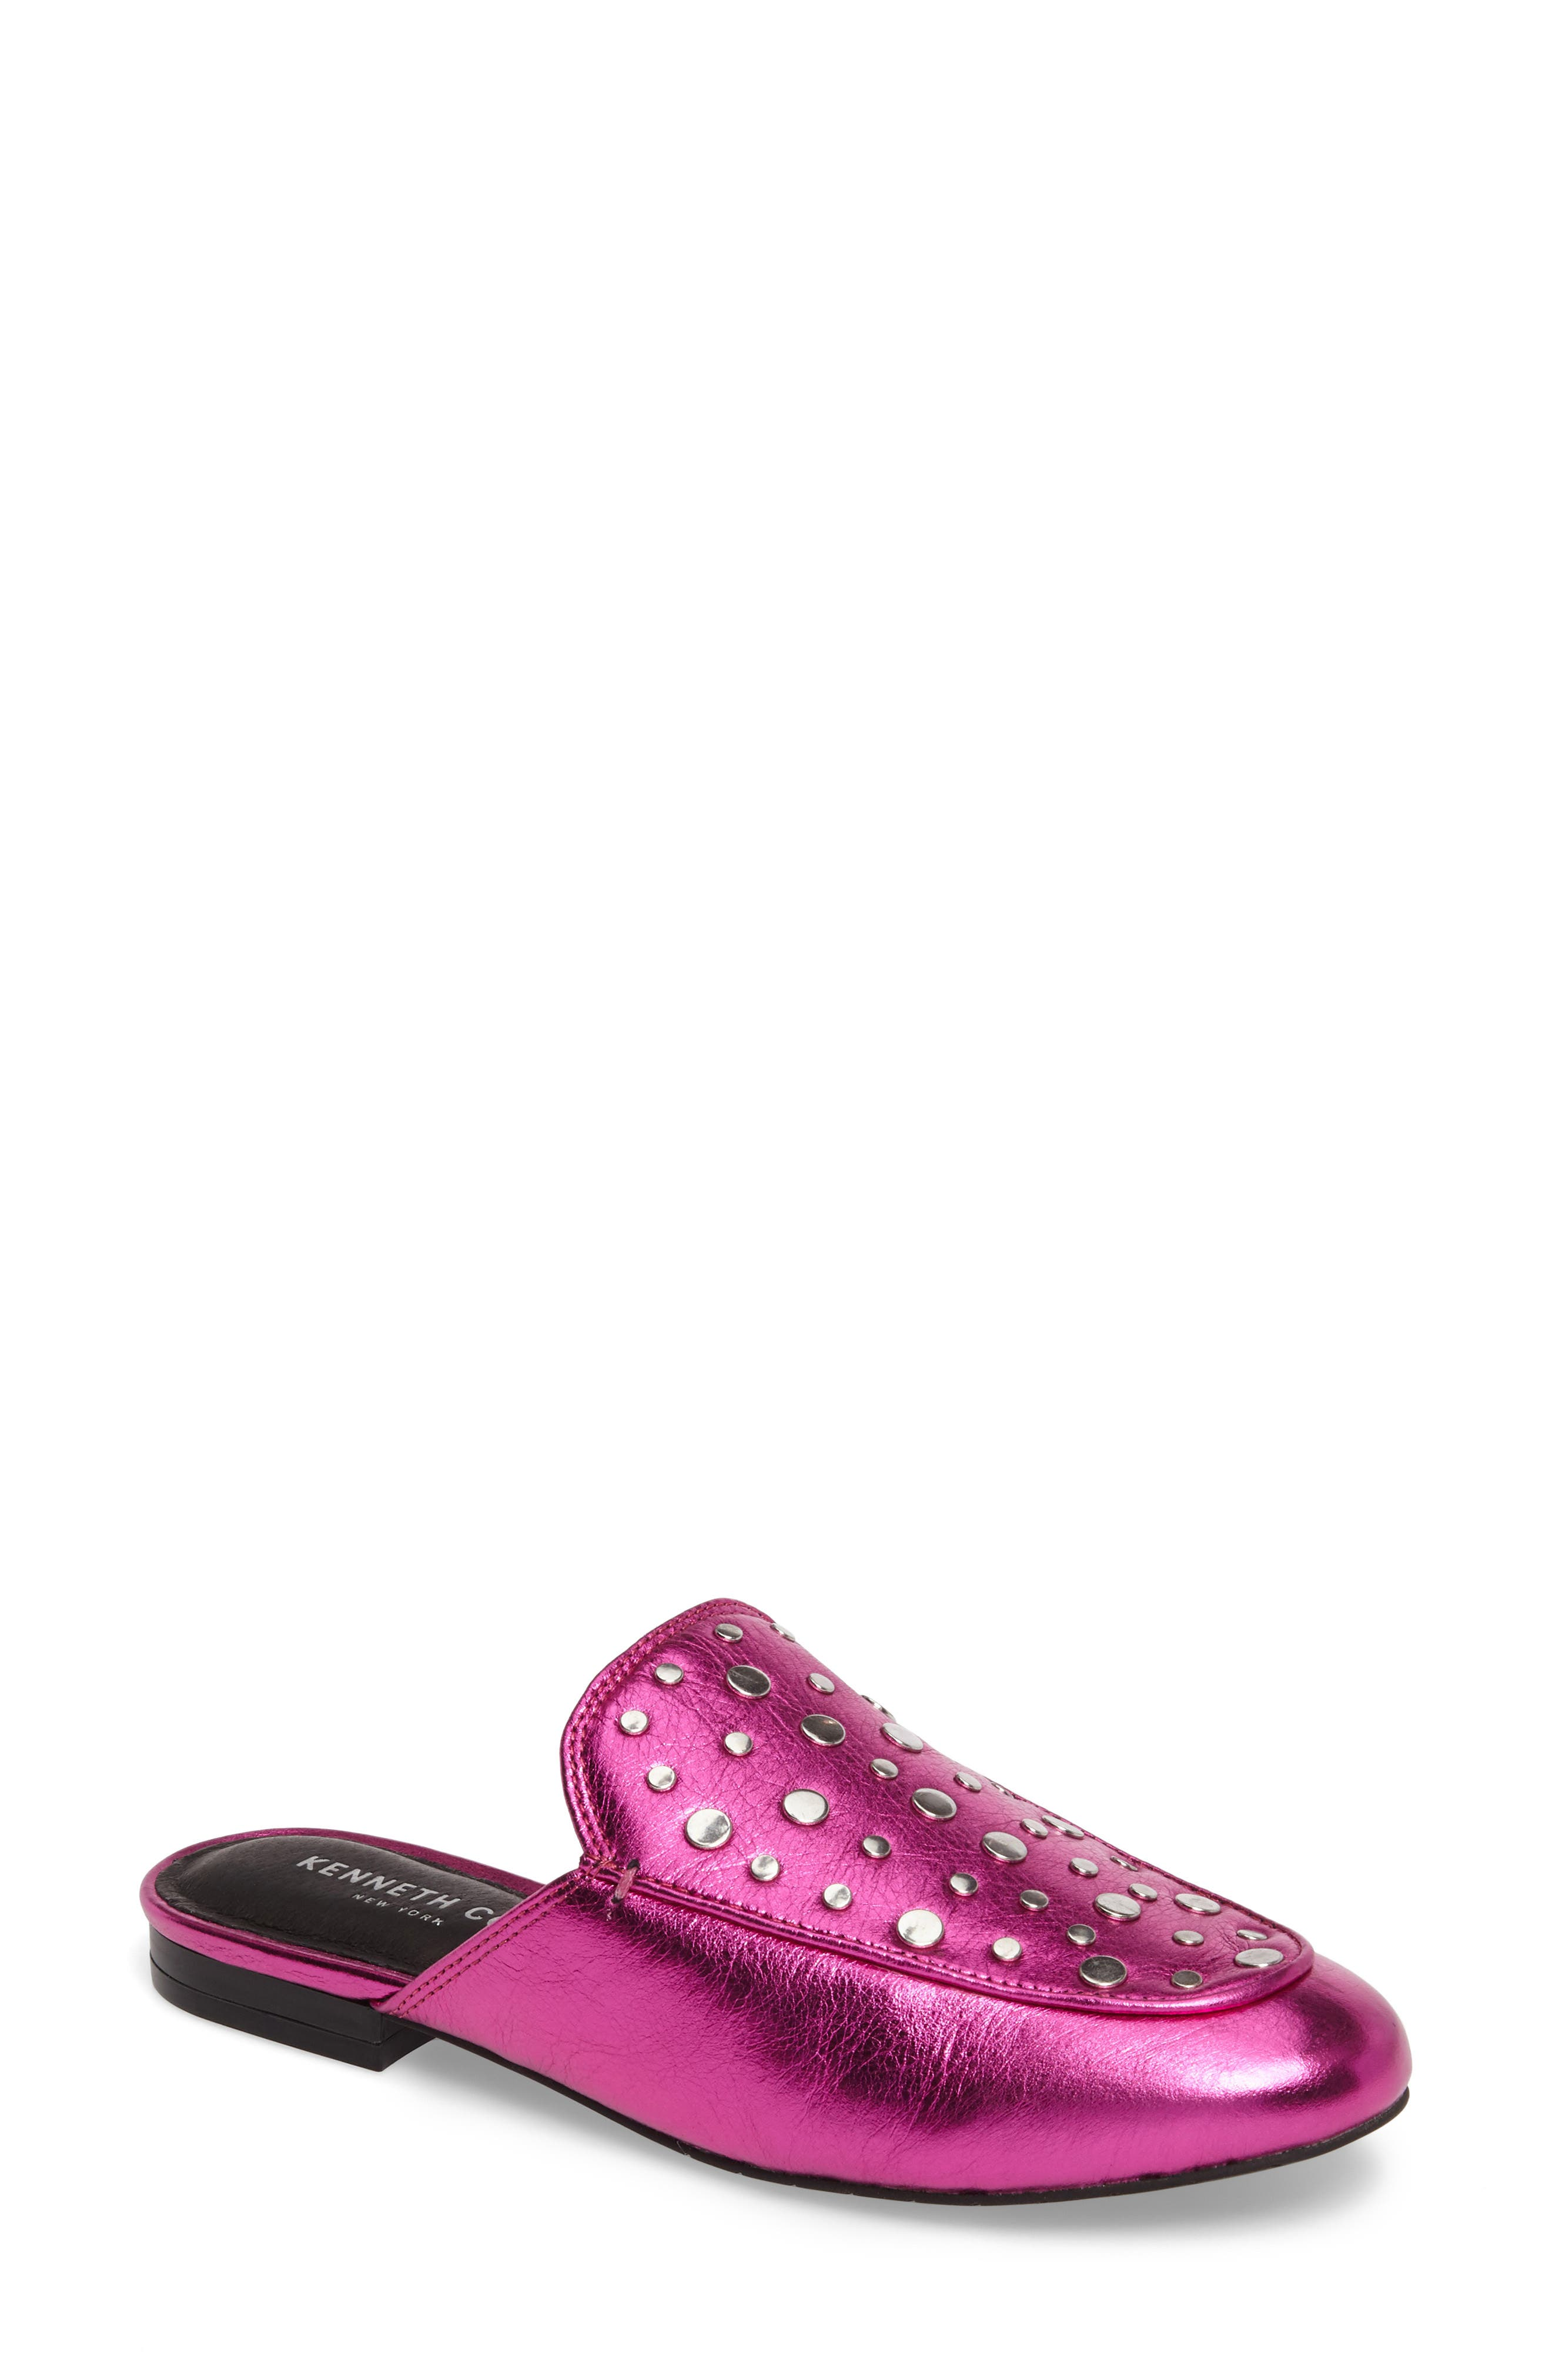 Wynter Studded Loafer,                             Main thumbnail 1, color,                             551